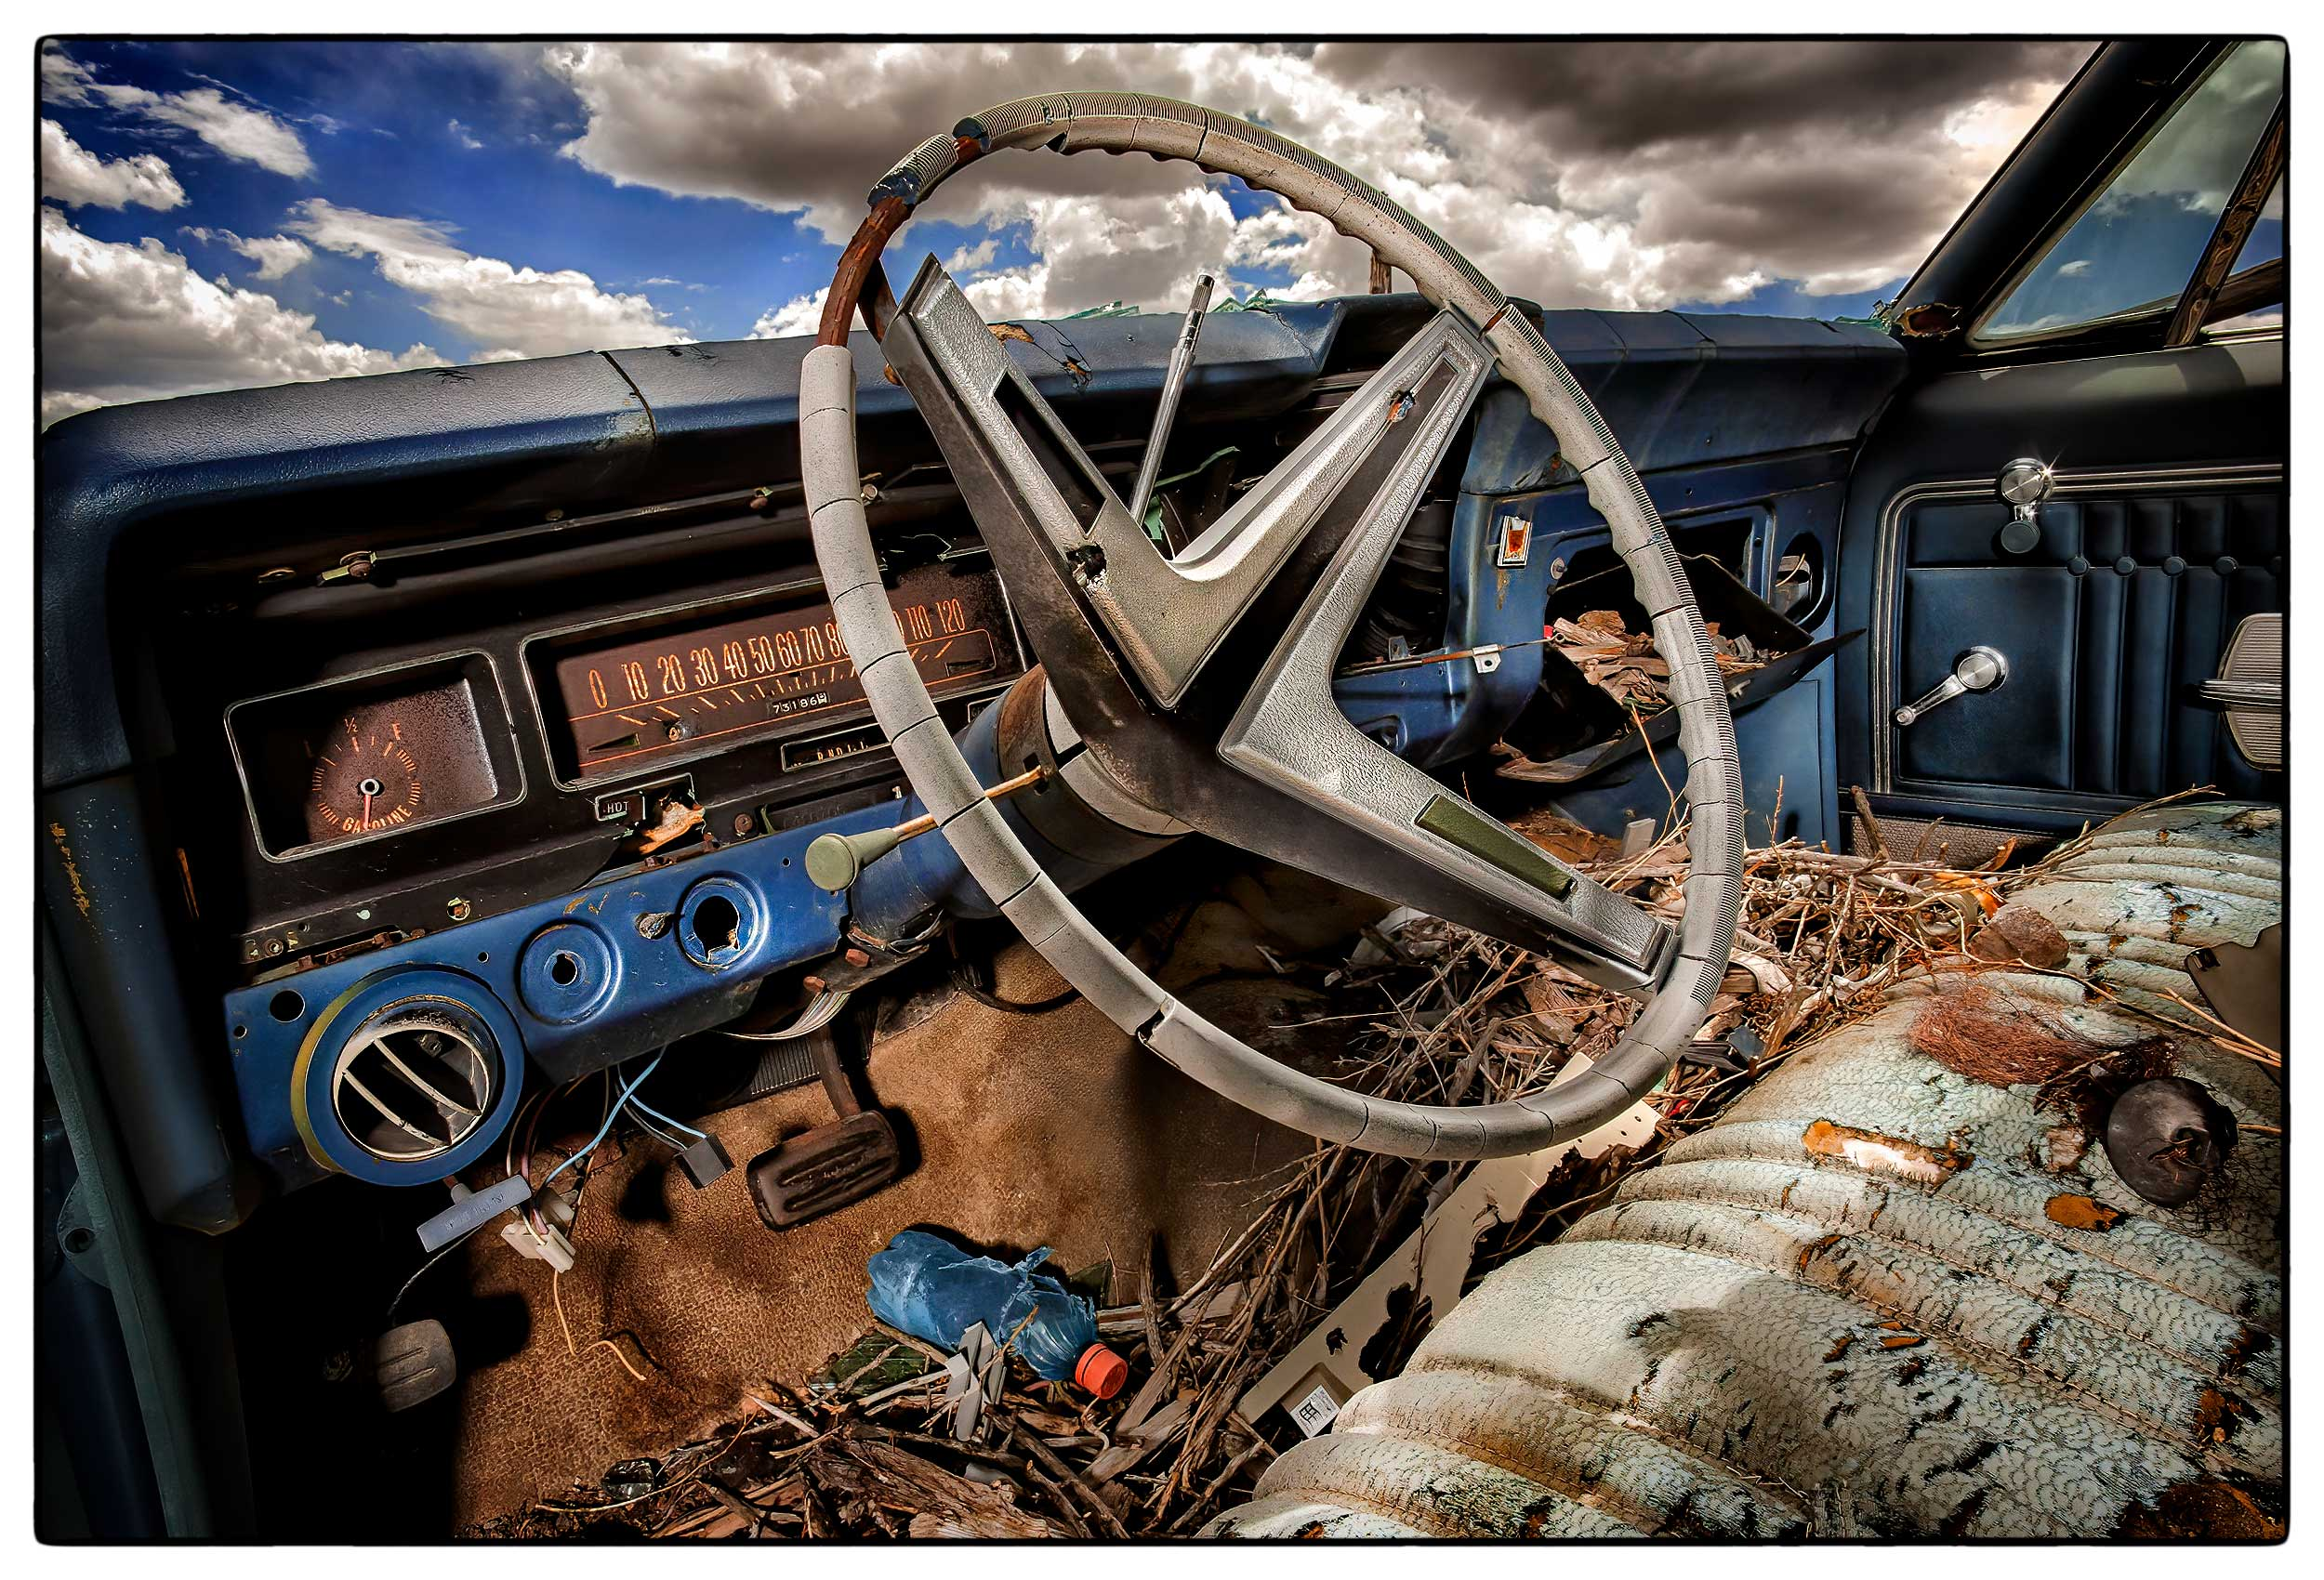 the-interior-of-an-abandoned-1970s-chevy-car-in-the-nevada-desert-final-high-res-web-copy